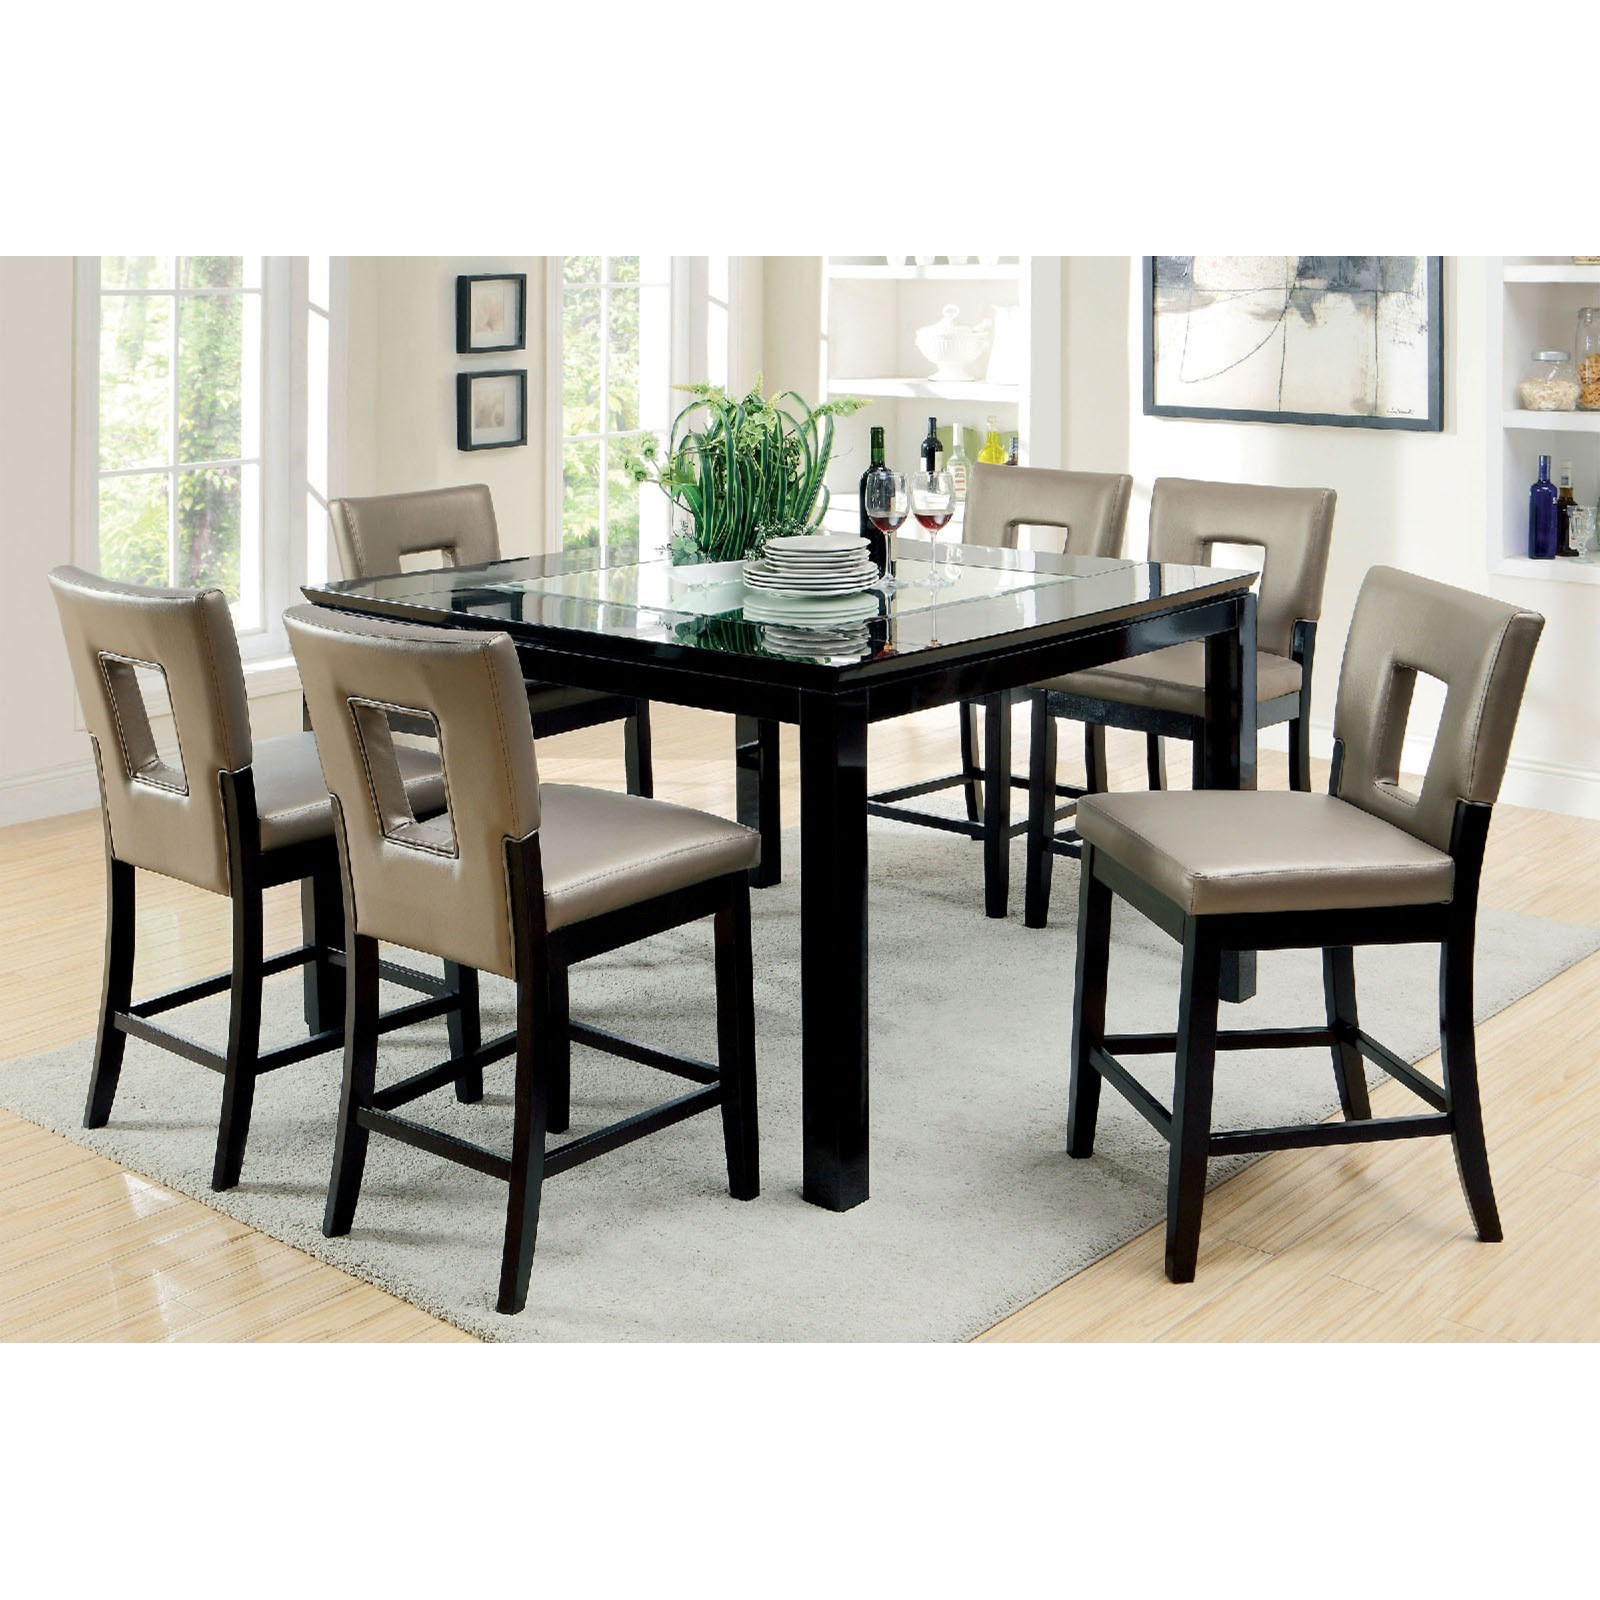 Counter Height Table Set with Six Chairs